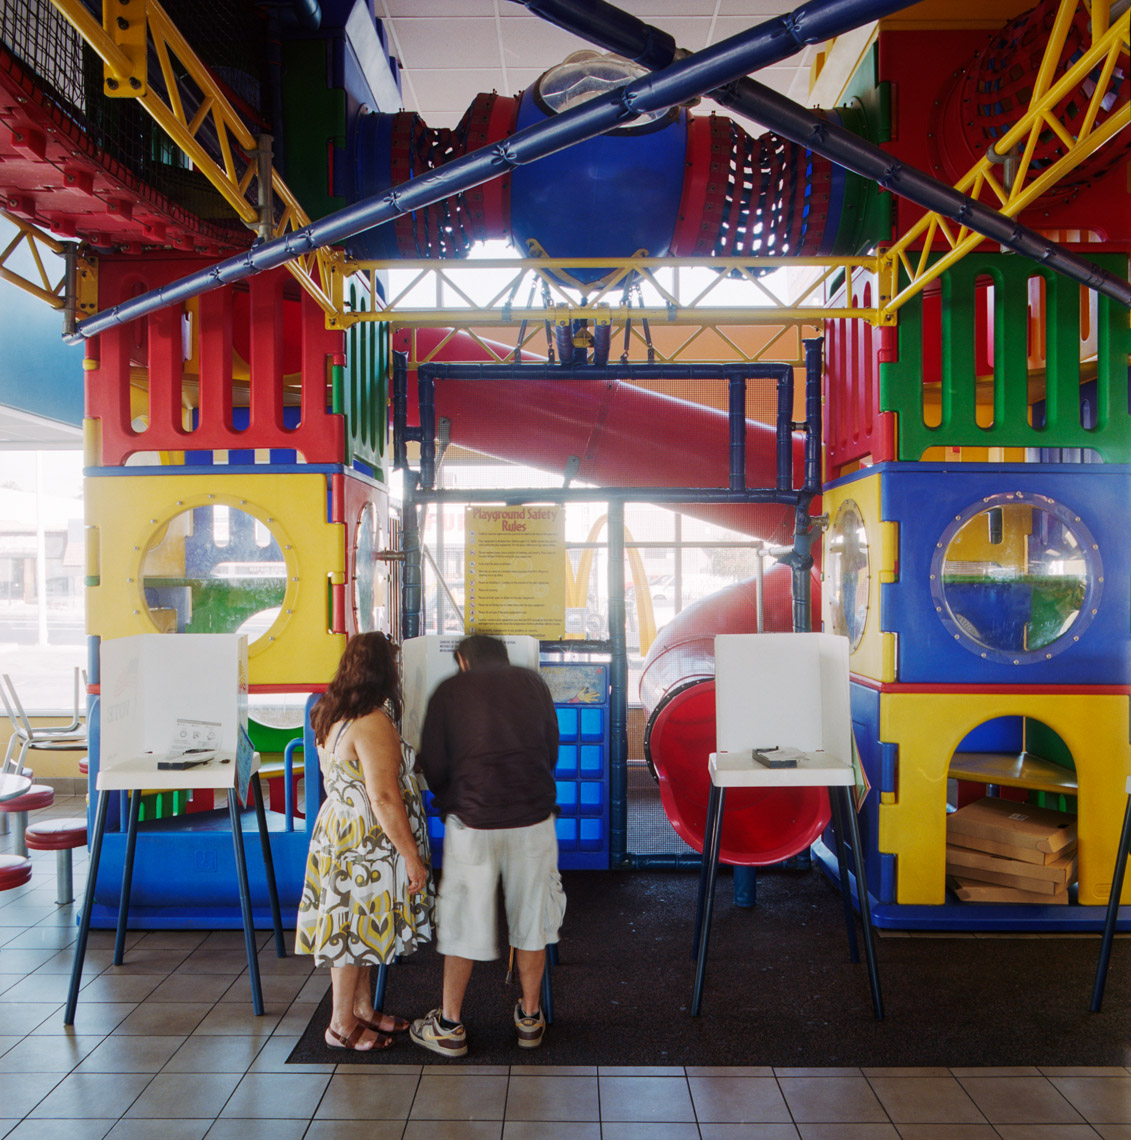 Image: © Ryan Donnell, The Polling Place Project, McDonald's, Los Angeles